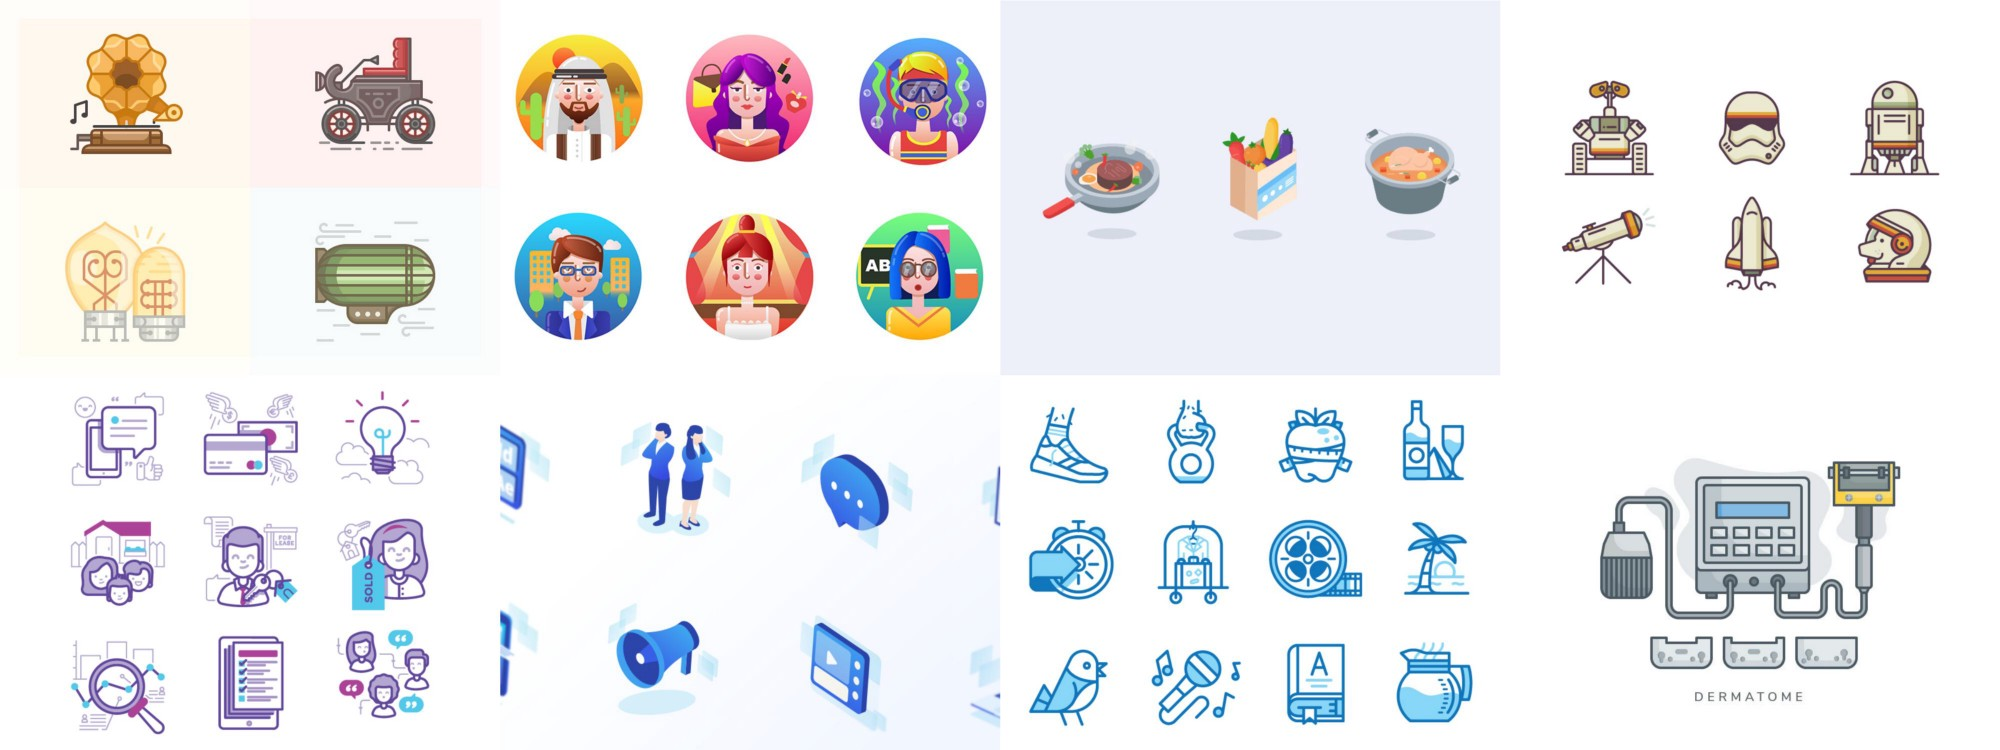 Heres Our Thirteen Article On Blog Series Icon Design Inspiration This Time Weve Picked 18 Best Shots Which Includes Really Good Icons And